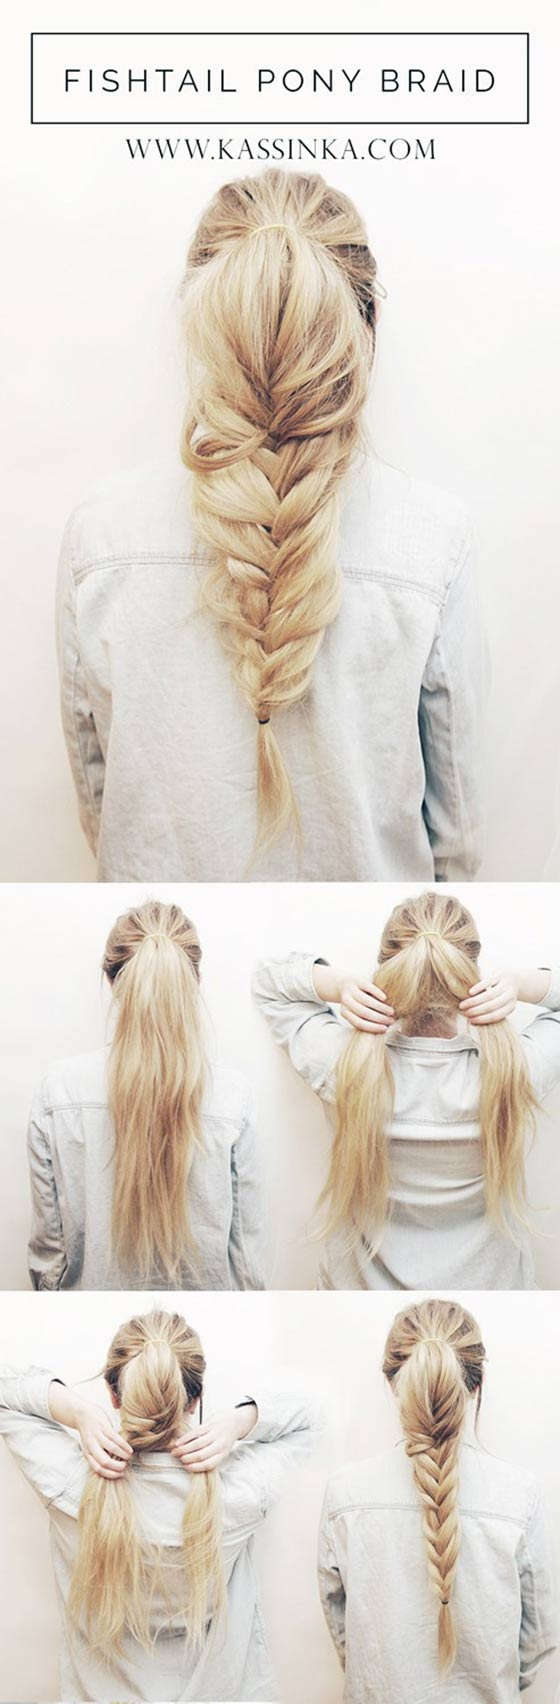 Fishtail-Pony-Braid